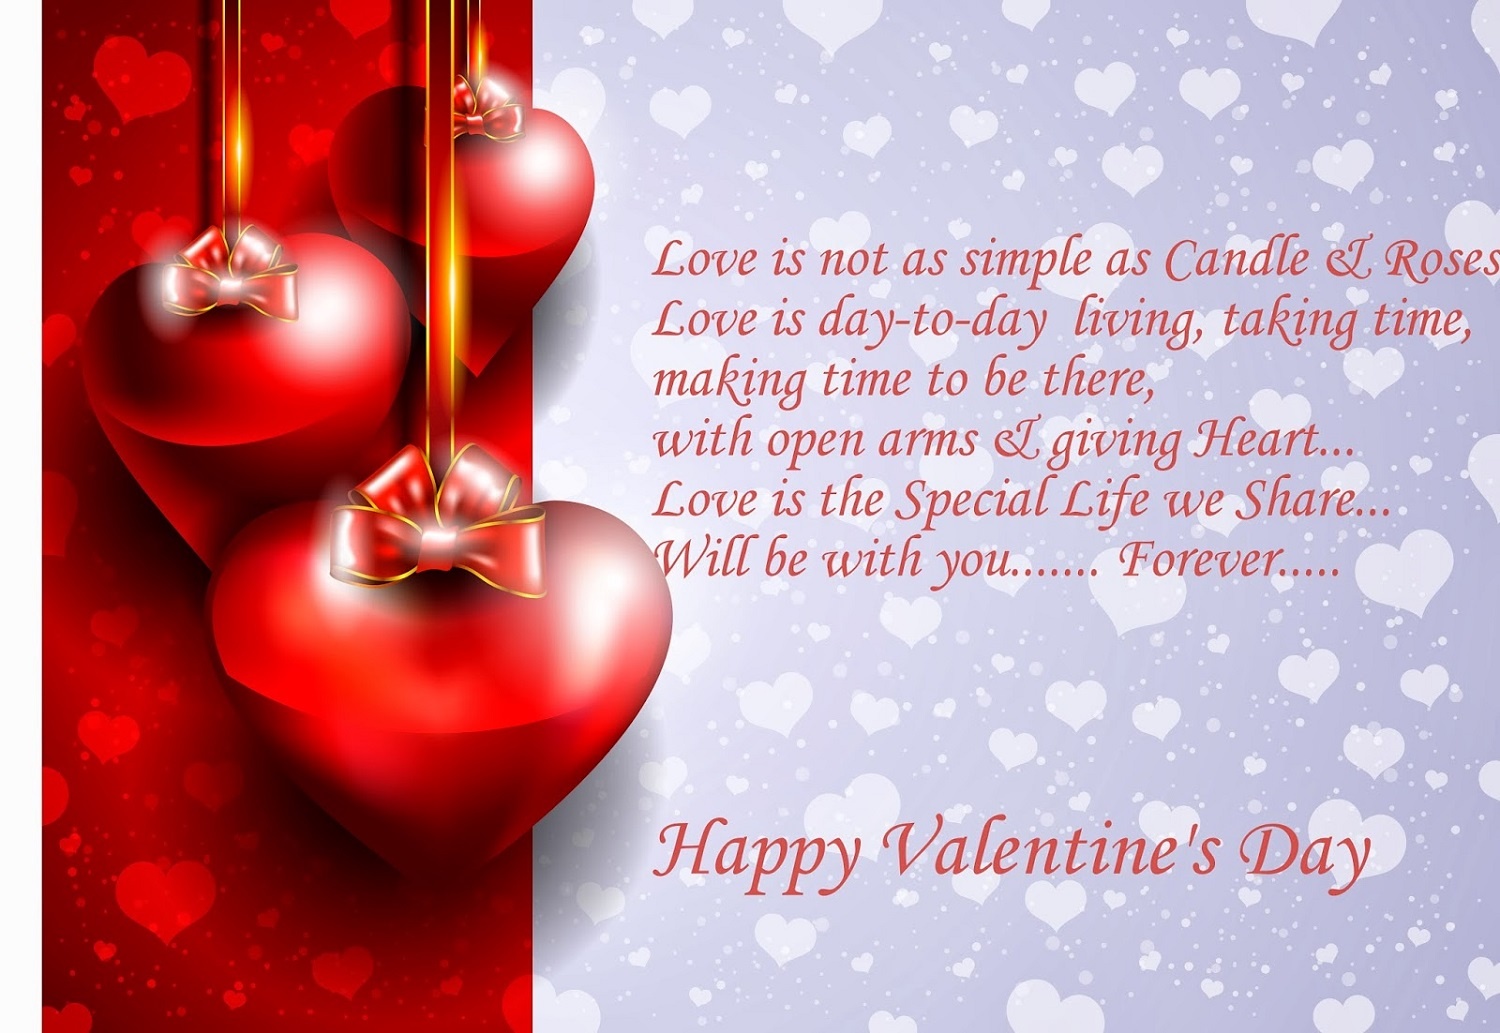 Valentine Day 2017 Image With Poem